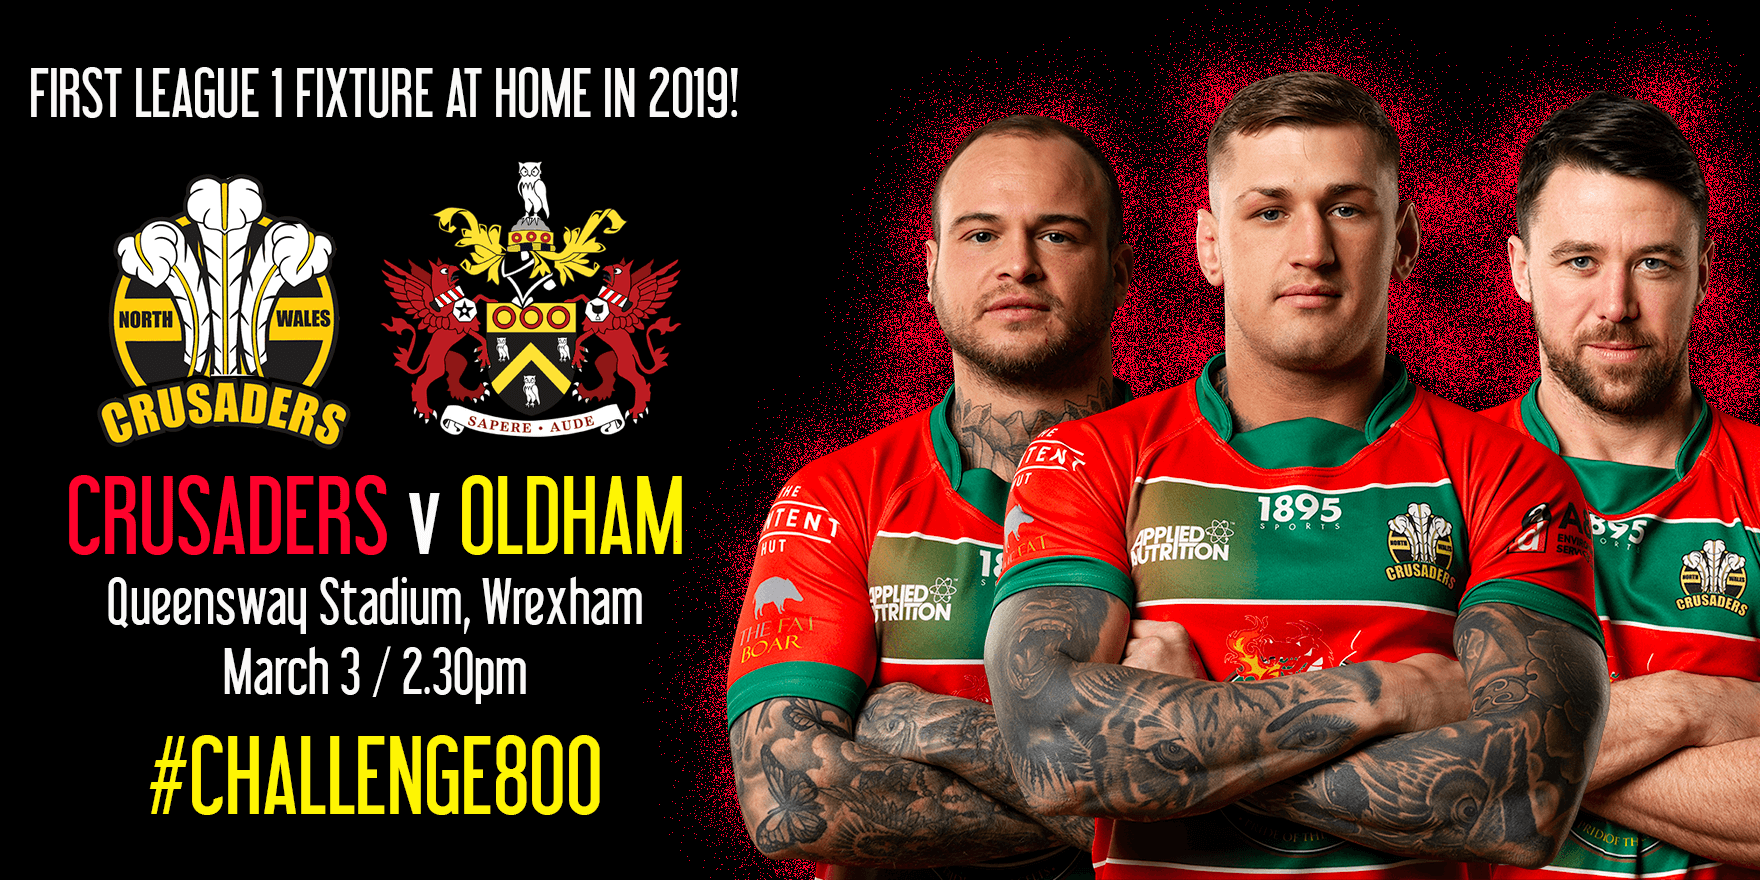 Get involved with #CHALLENGE800 ahead of first home match against Oldham